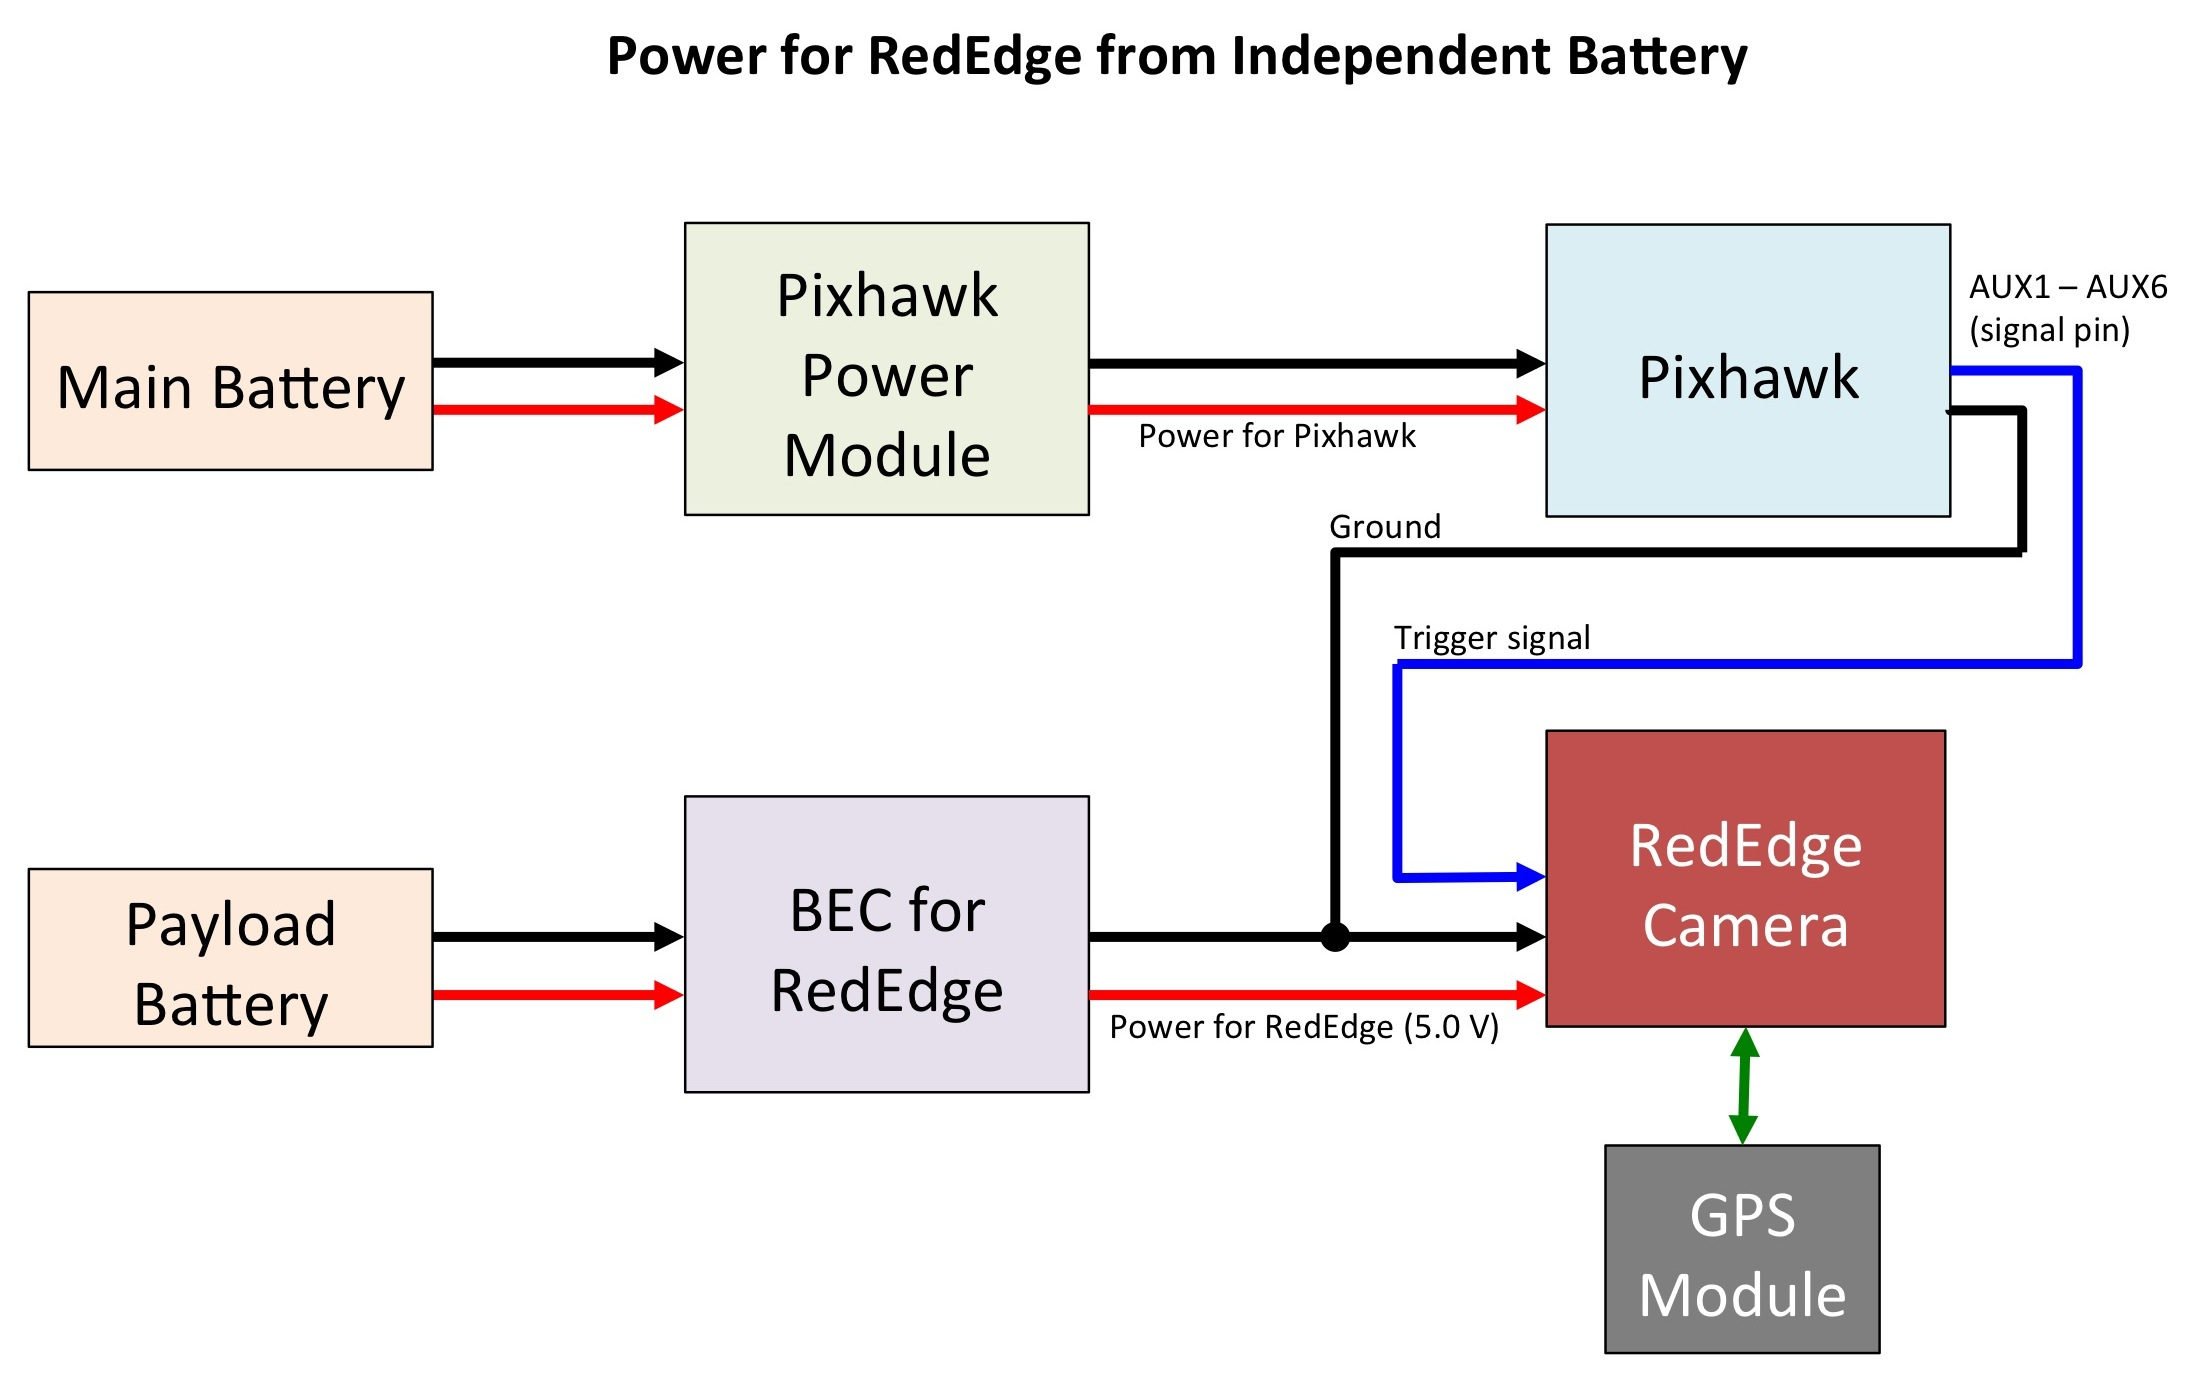 How Do I Set Up My Pixhawk To Trigger The Rededge Camera Basic Battery Diagram Note That In Above A Bec Is Shown For This Needed Convert Higher Voltage 2s Or 3s 50 Volts Required By